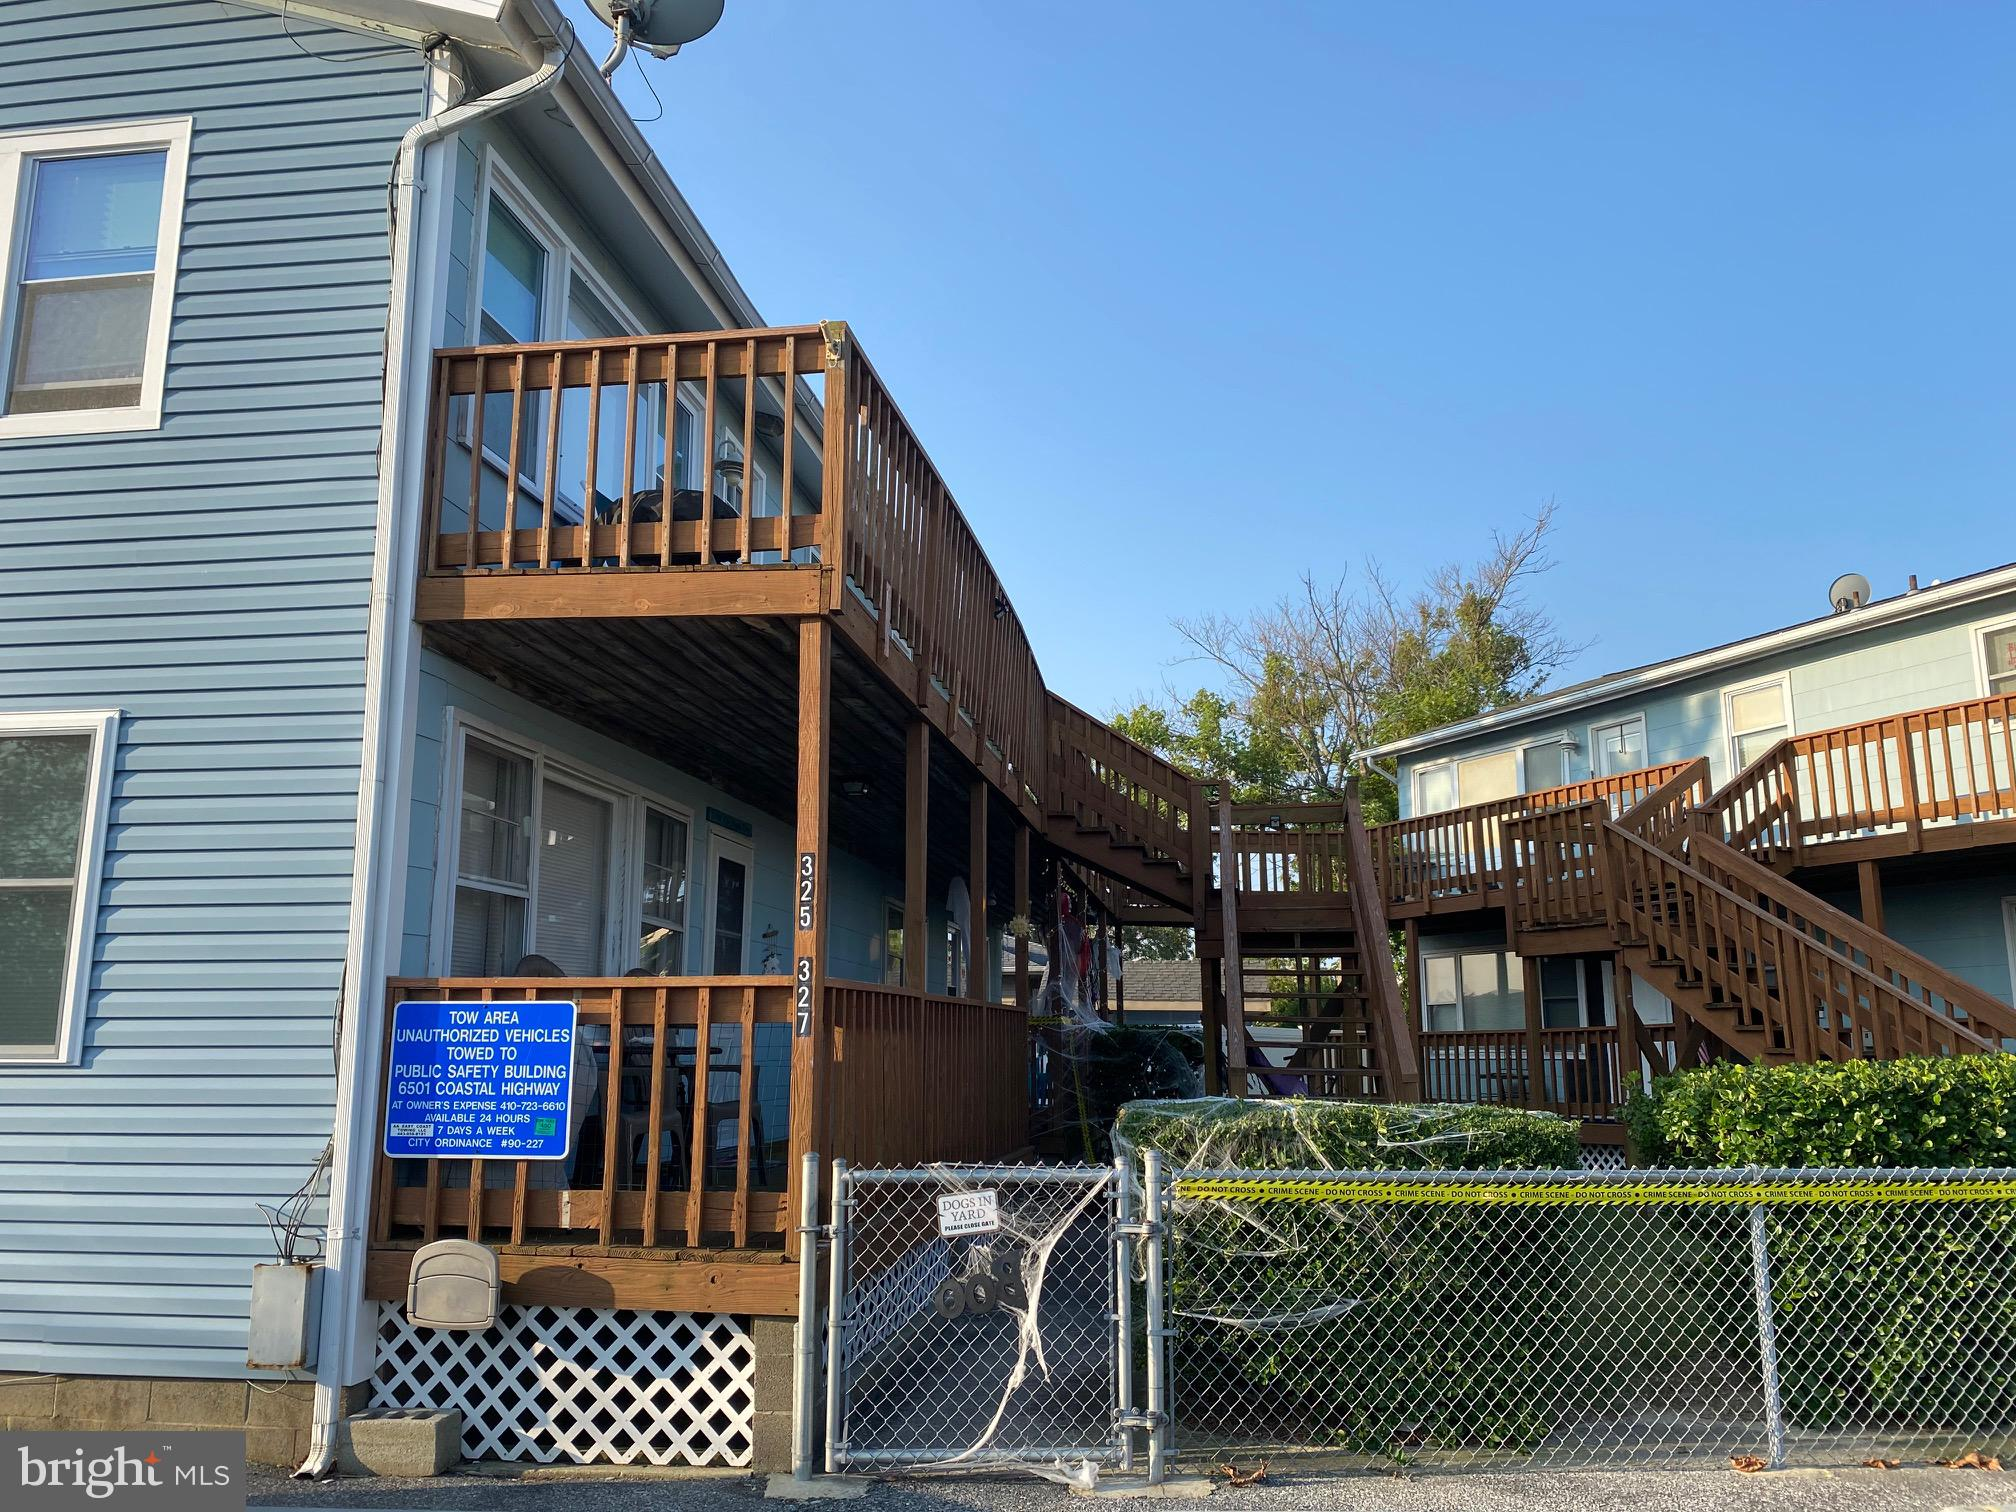 Priced to sell! This 2BR, 1BA condo would make the perfect home away from home or fantastic vacation